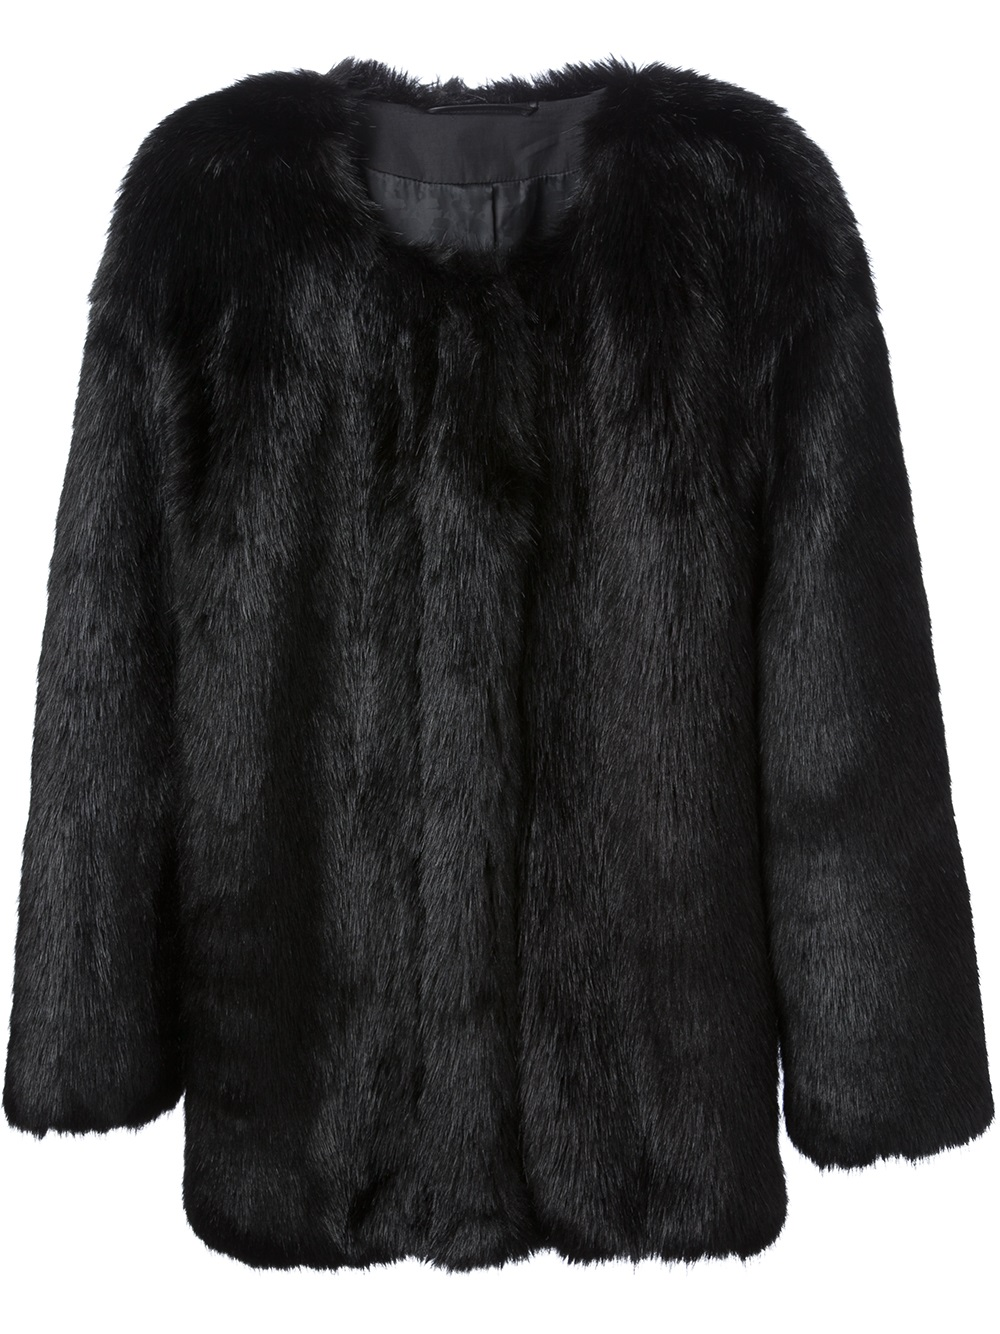 Karl lagerfeld Faux Fur Jacket in Black | Lyst